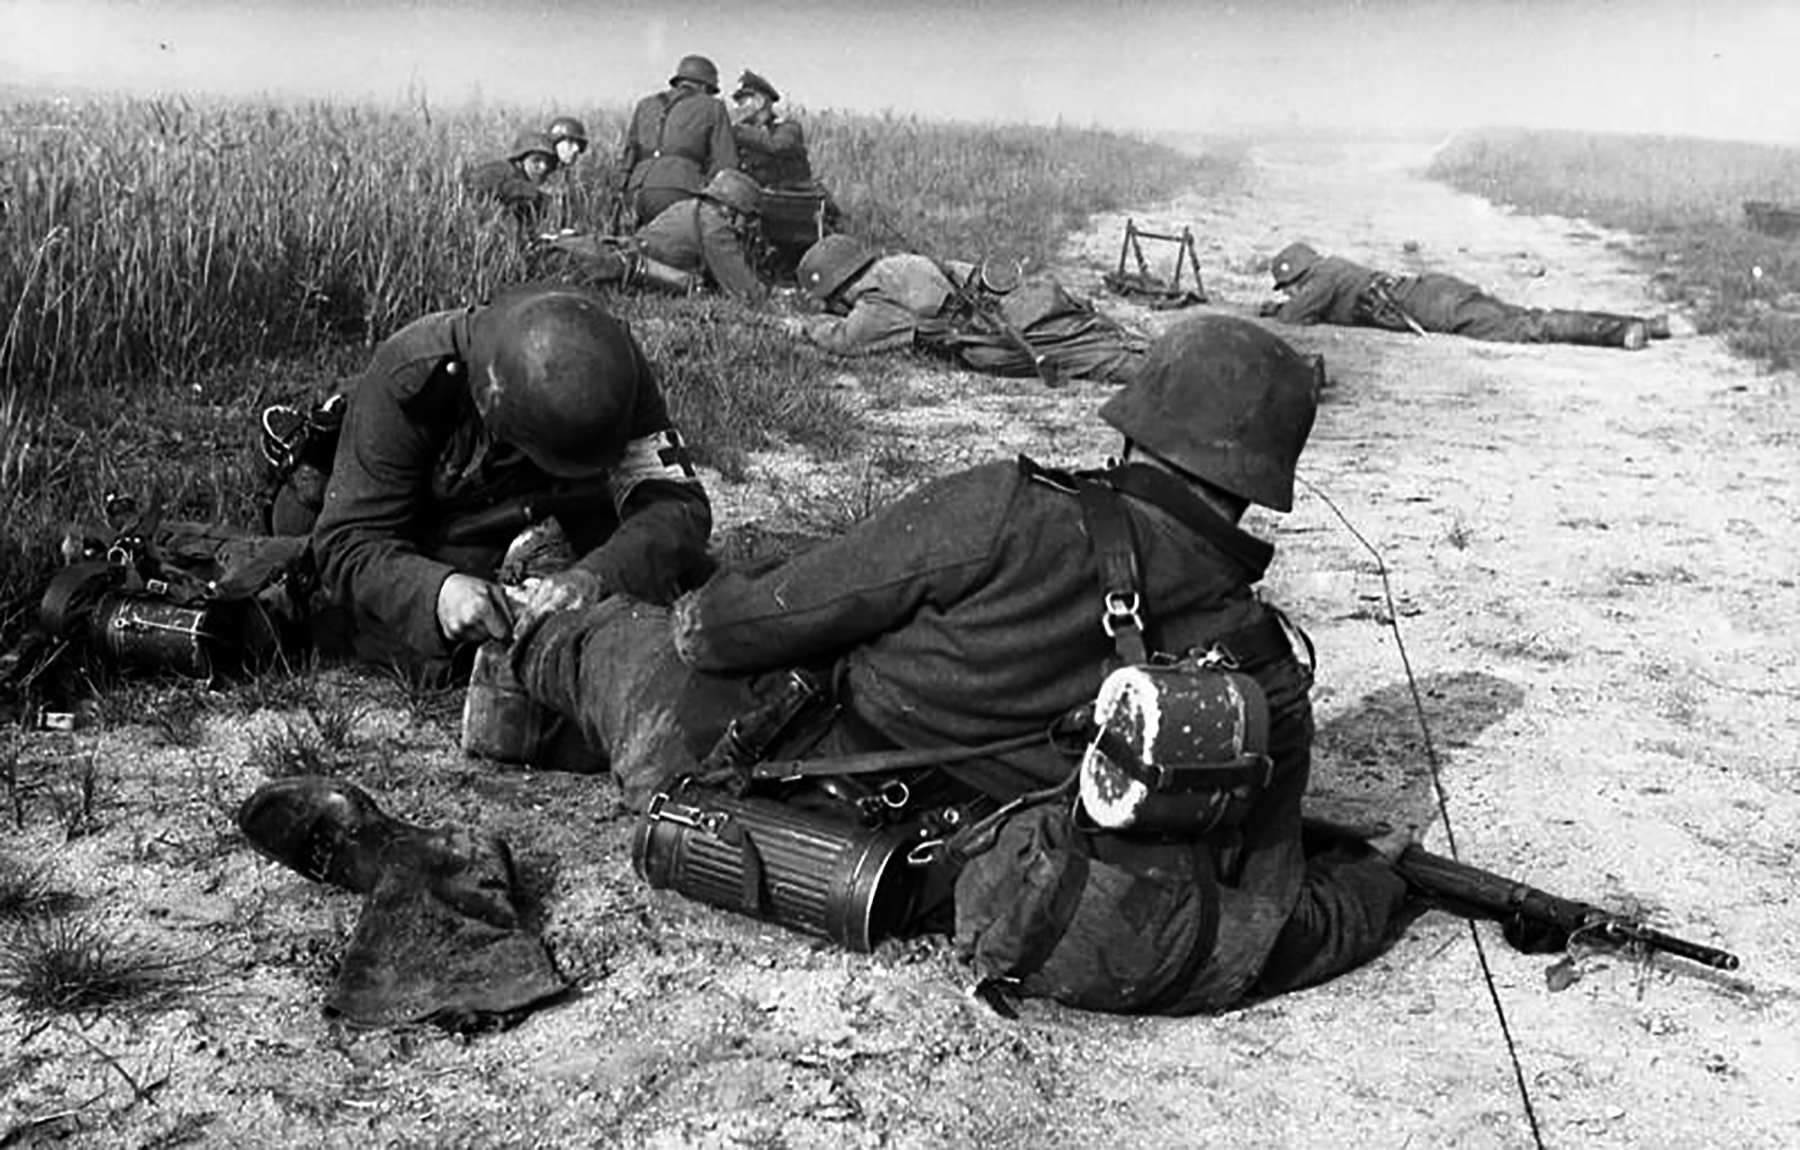 German military medic providing first aid to a fellow wounded soldier 1940 wiki 01